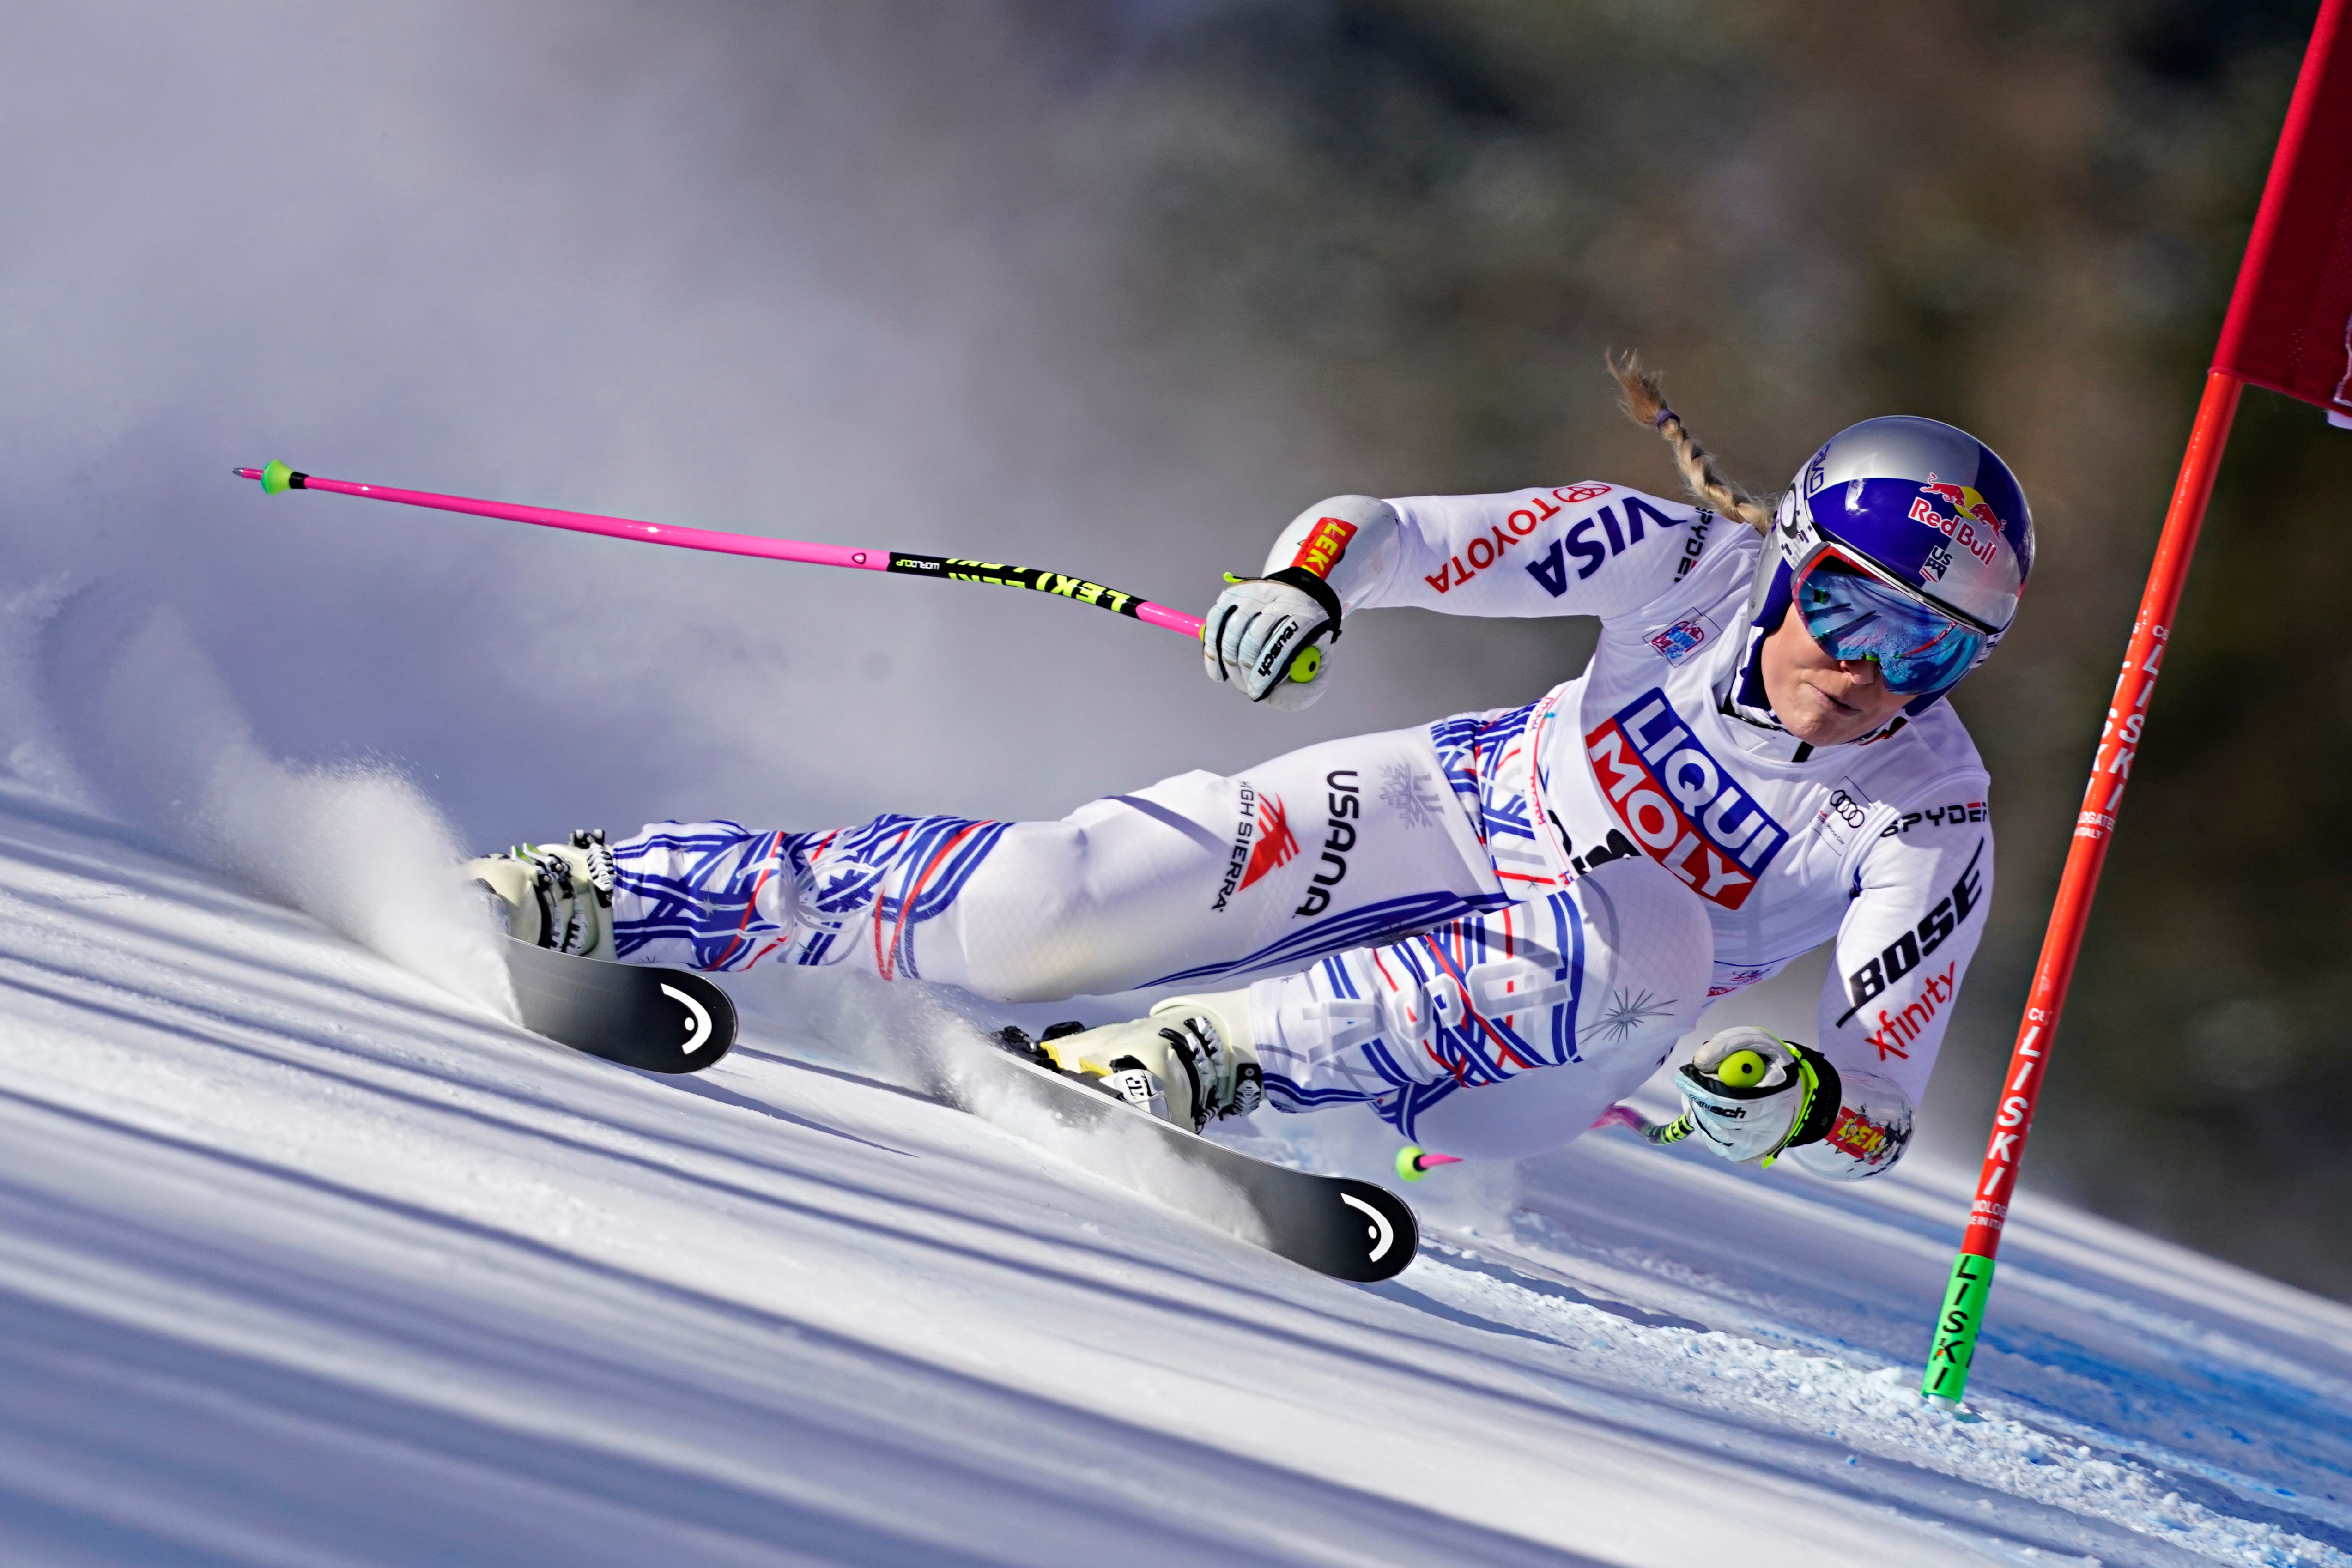 Lindsey Vonn: 'Now it's time to listen to my body and it's time to say goodbye'